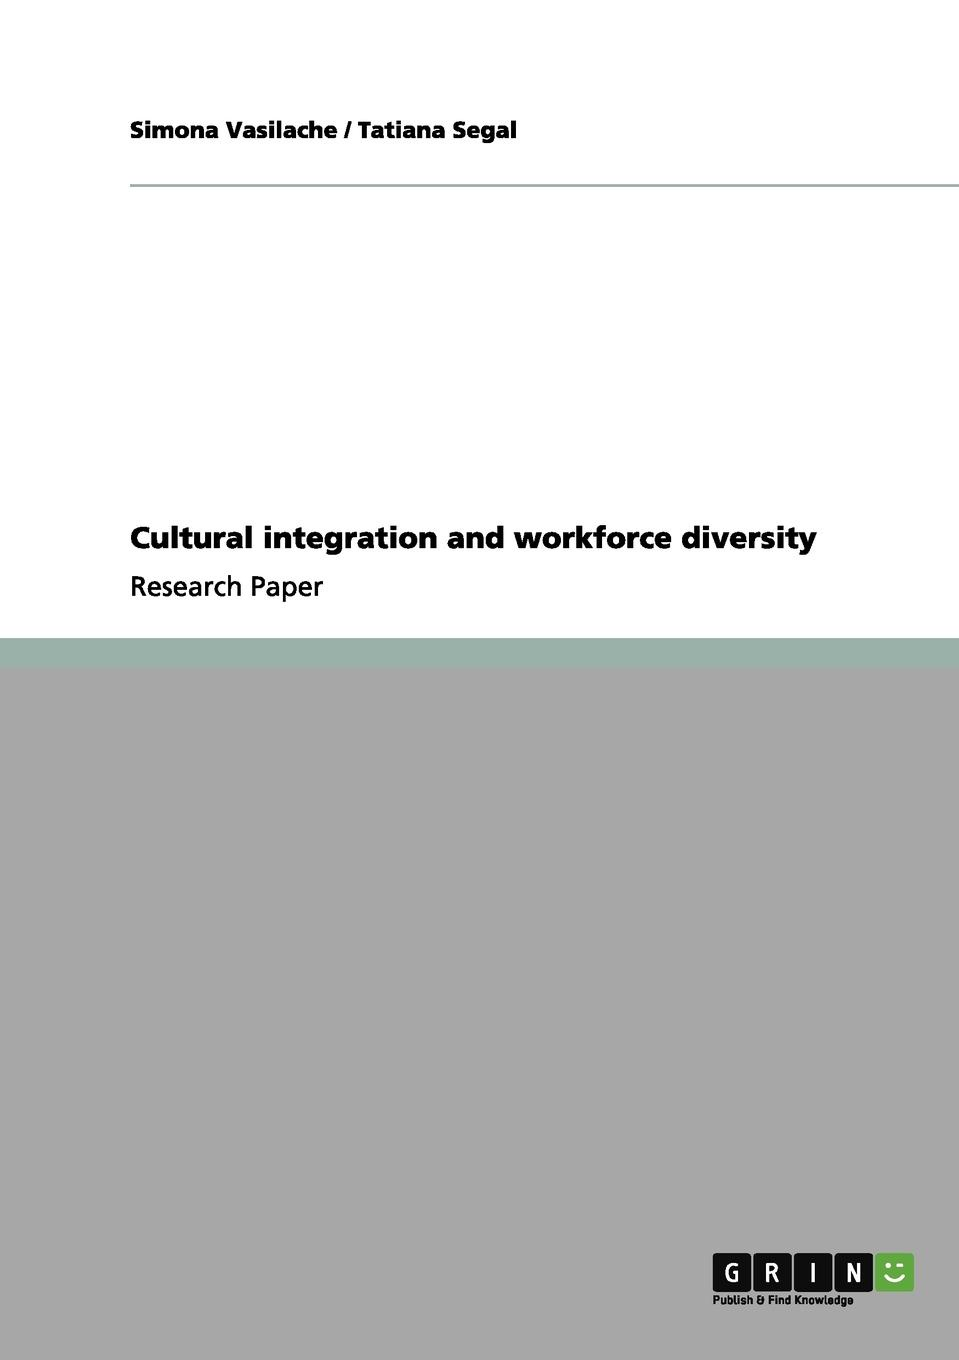 Simona Vasilache, Tatiana Segal Cultural integration and workforce diversity sandra herting globalization a threat to cultural diversity in southern ethiopia